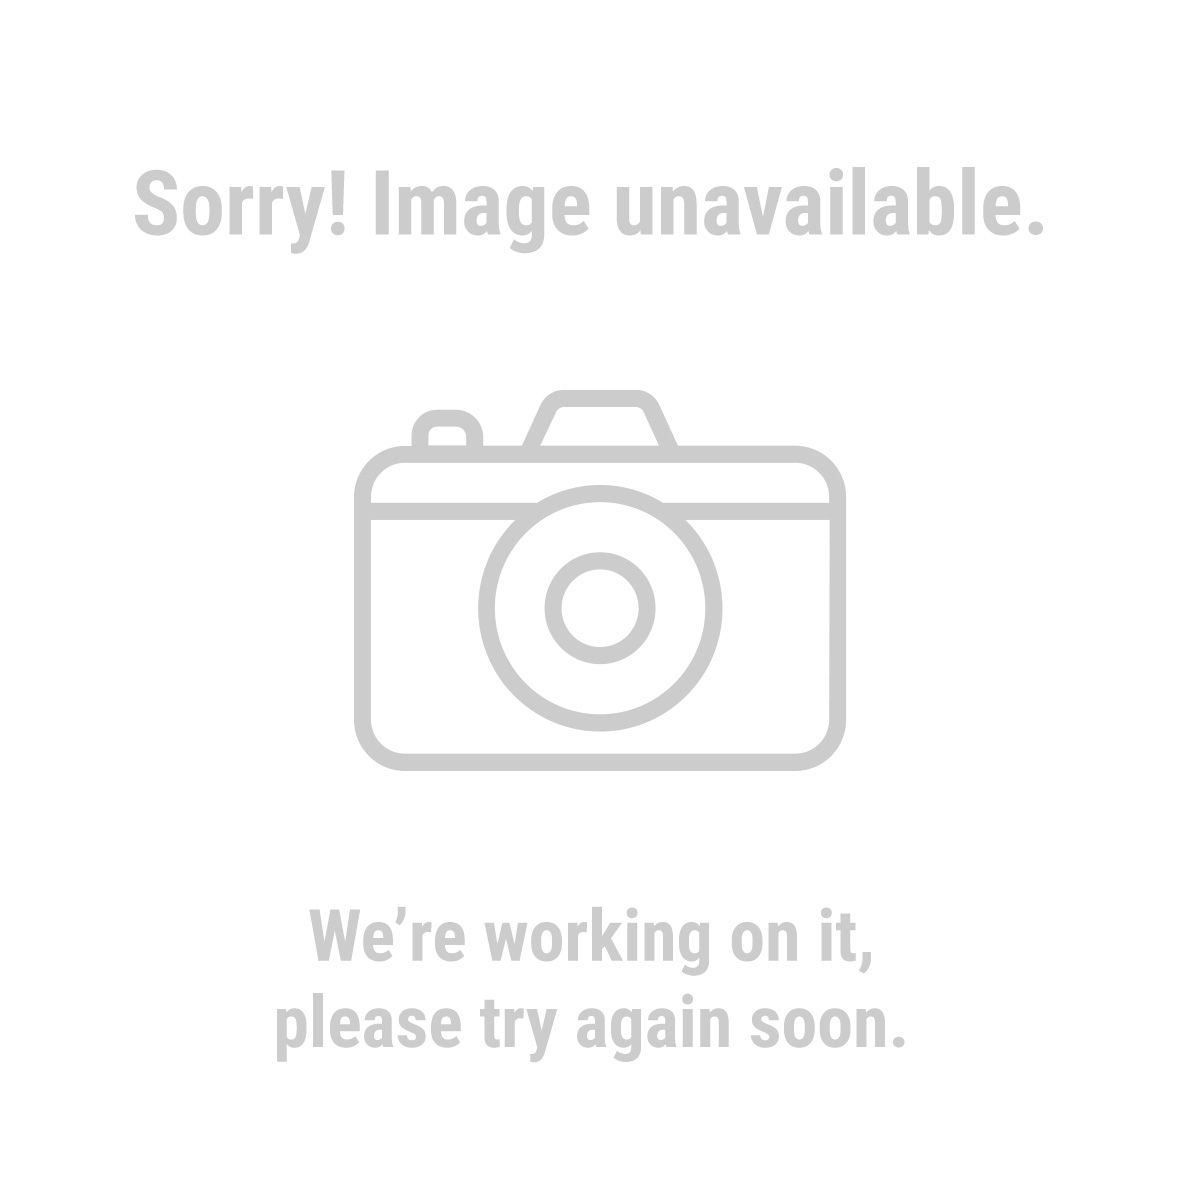 image_20969 3 gal 1 3 hp 100 psi oilless pancake air compressor  at panicattacktreatment.co